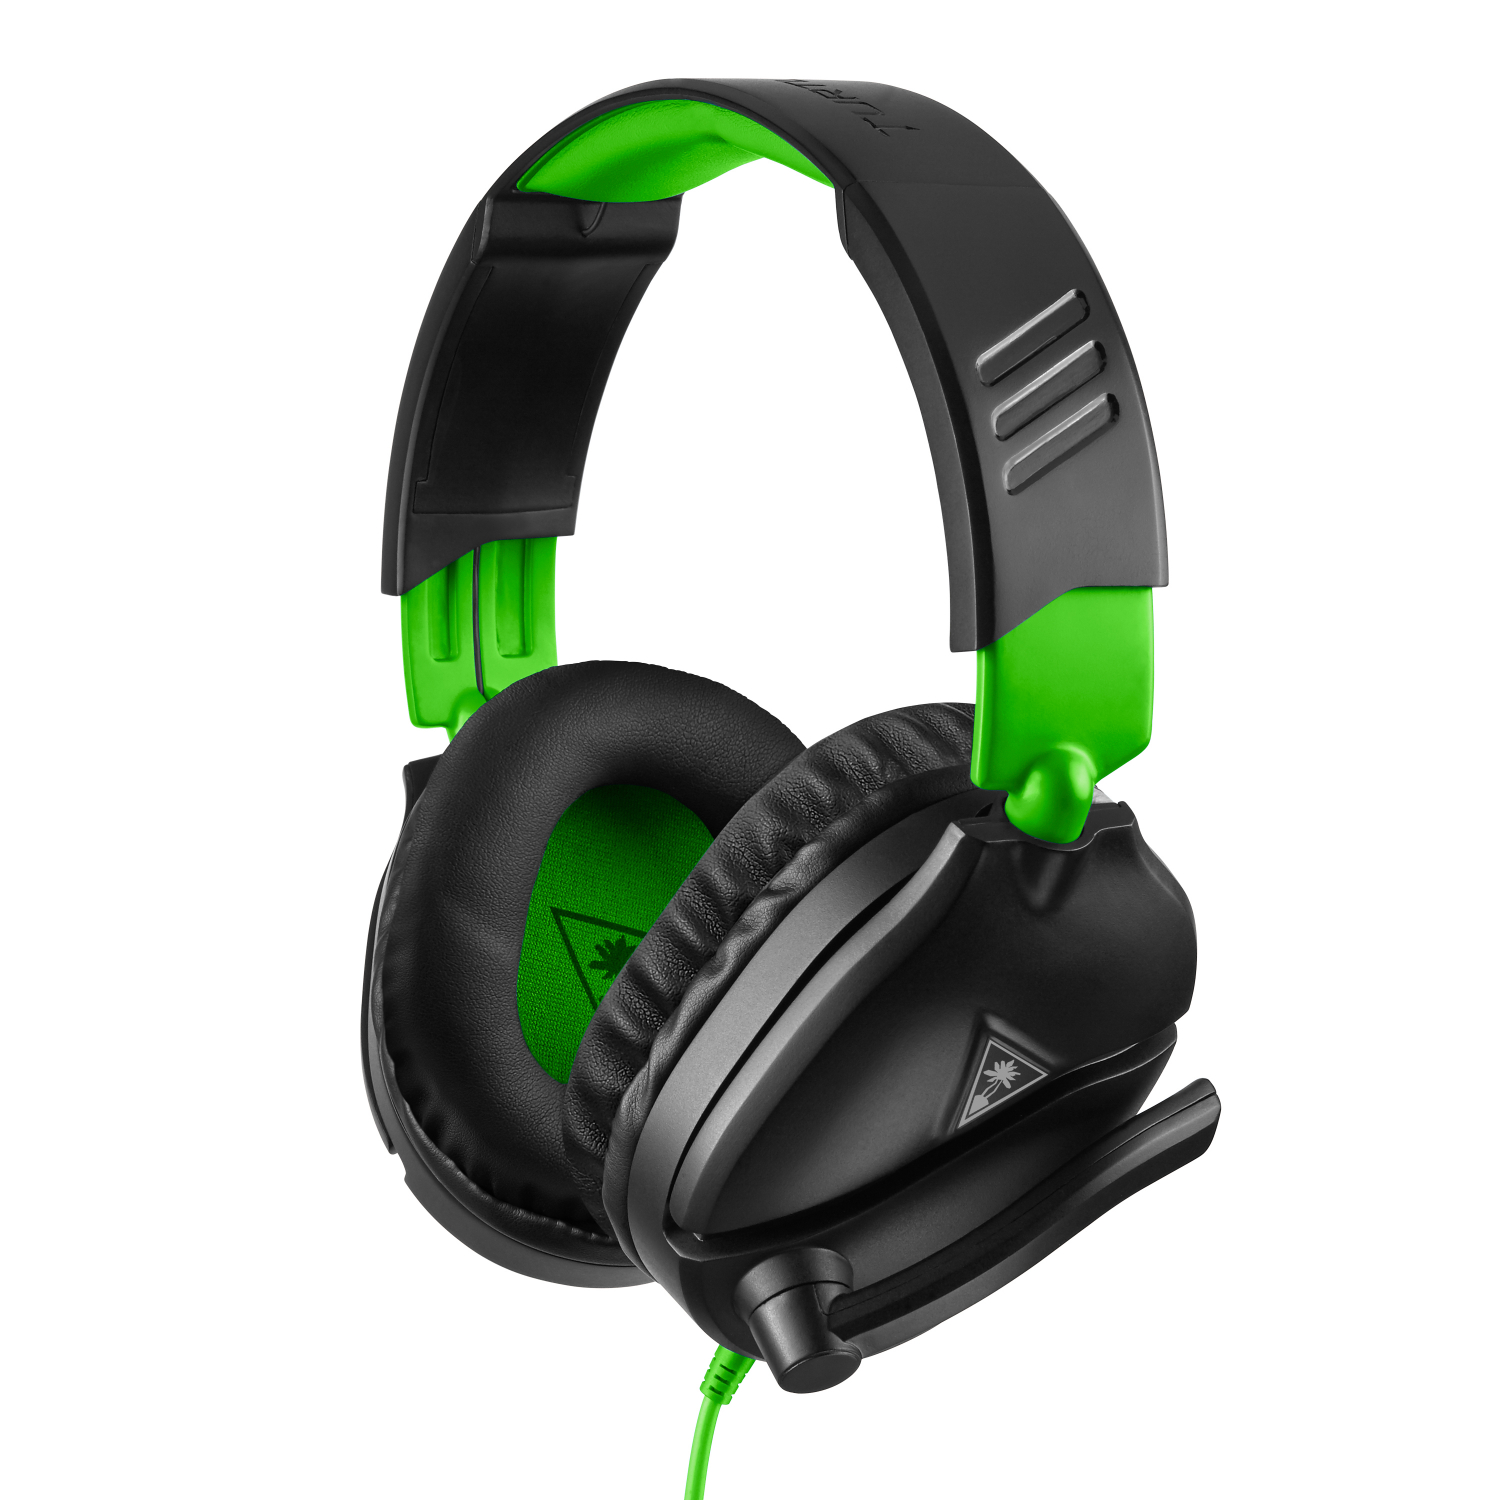 New Hd Quality Gaming Headset For Xbox One And Xbox Series X Ps4 Pc Mobile Ebay